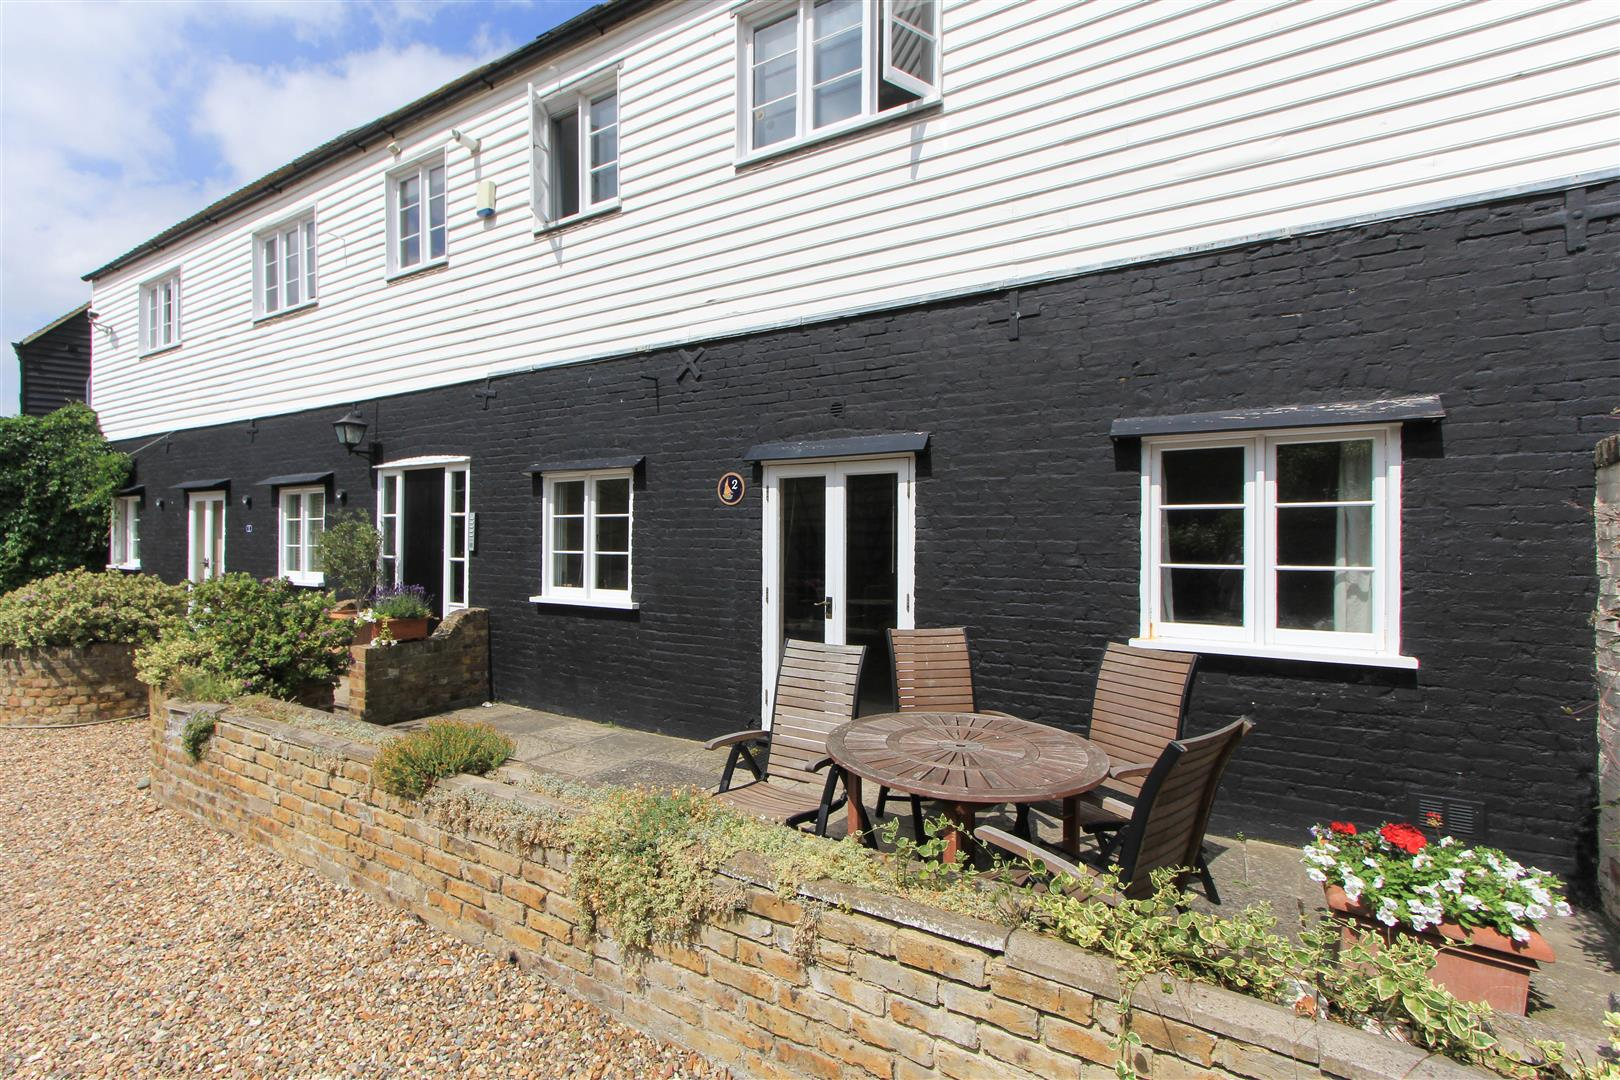 2 Bedrooms Apartment Flat for sale in Sea Street, Whitstable